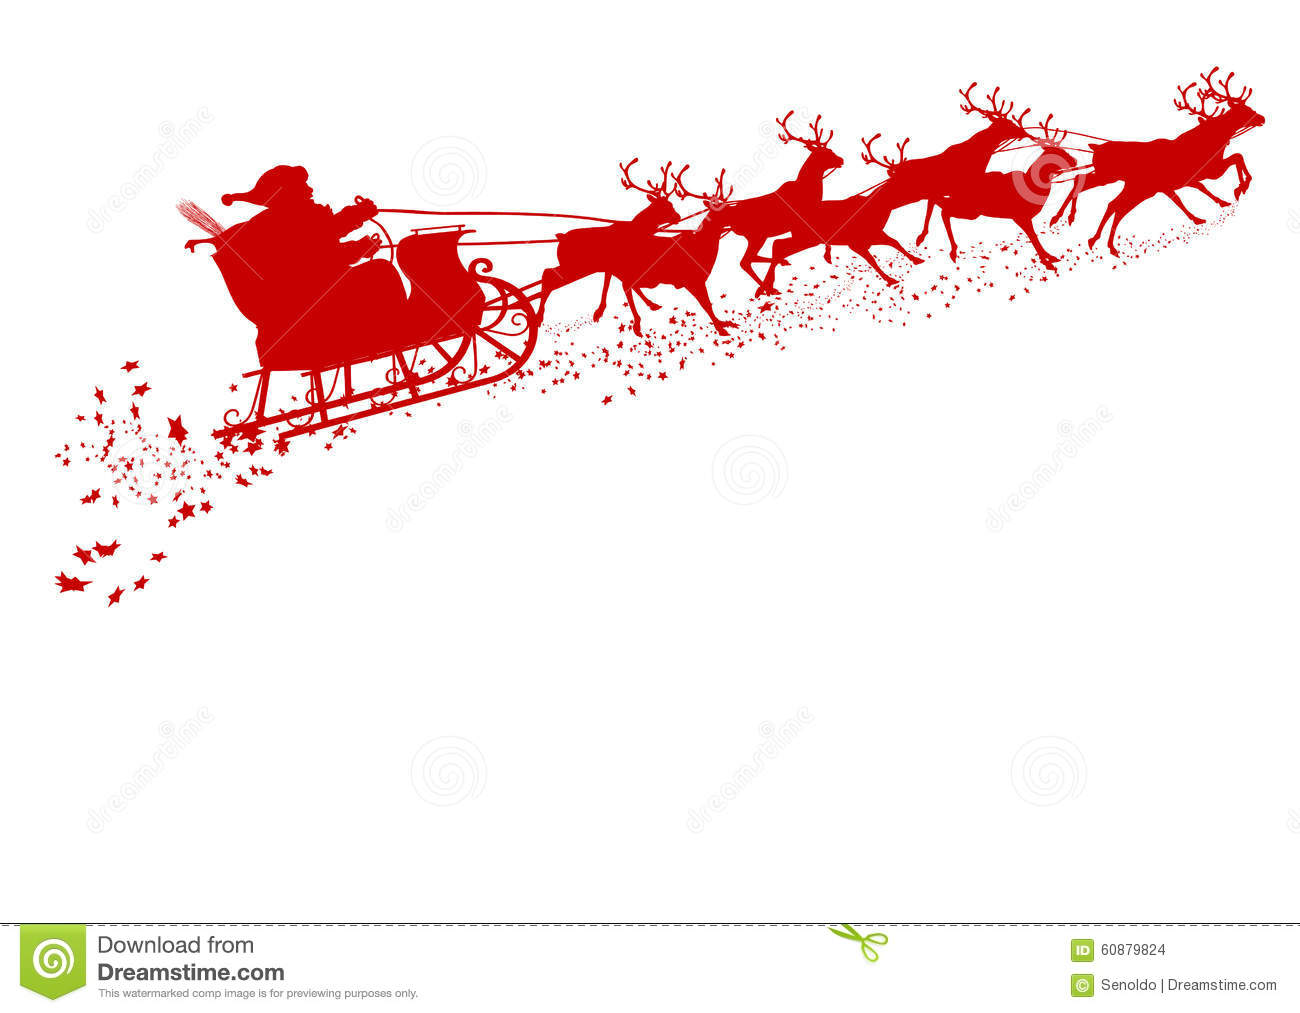 Santa Claus with Reindeer Sleigh - Red Silhouette - Outline Shape of ...